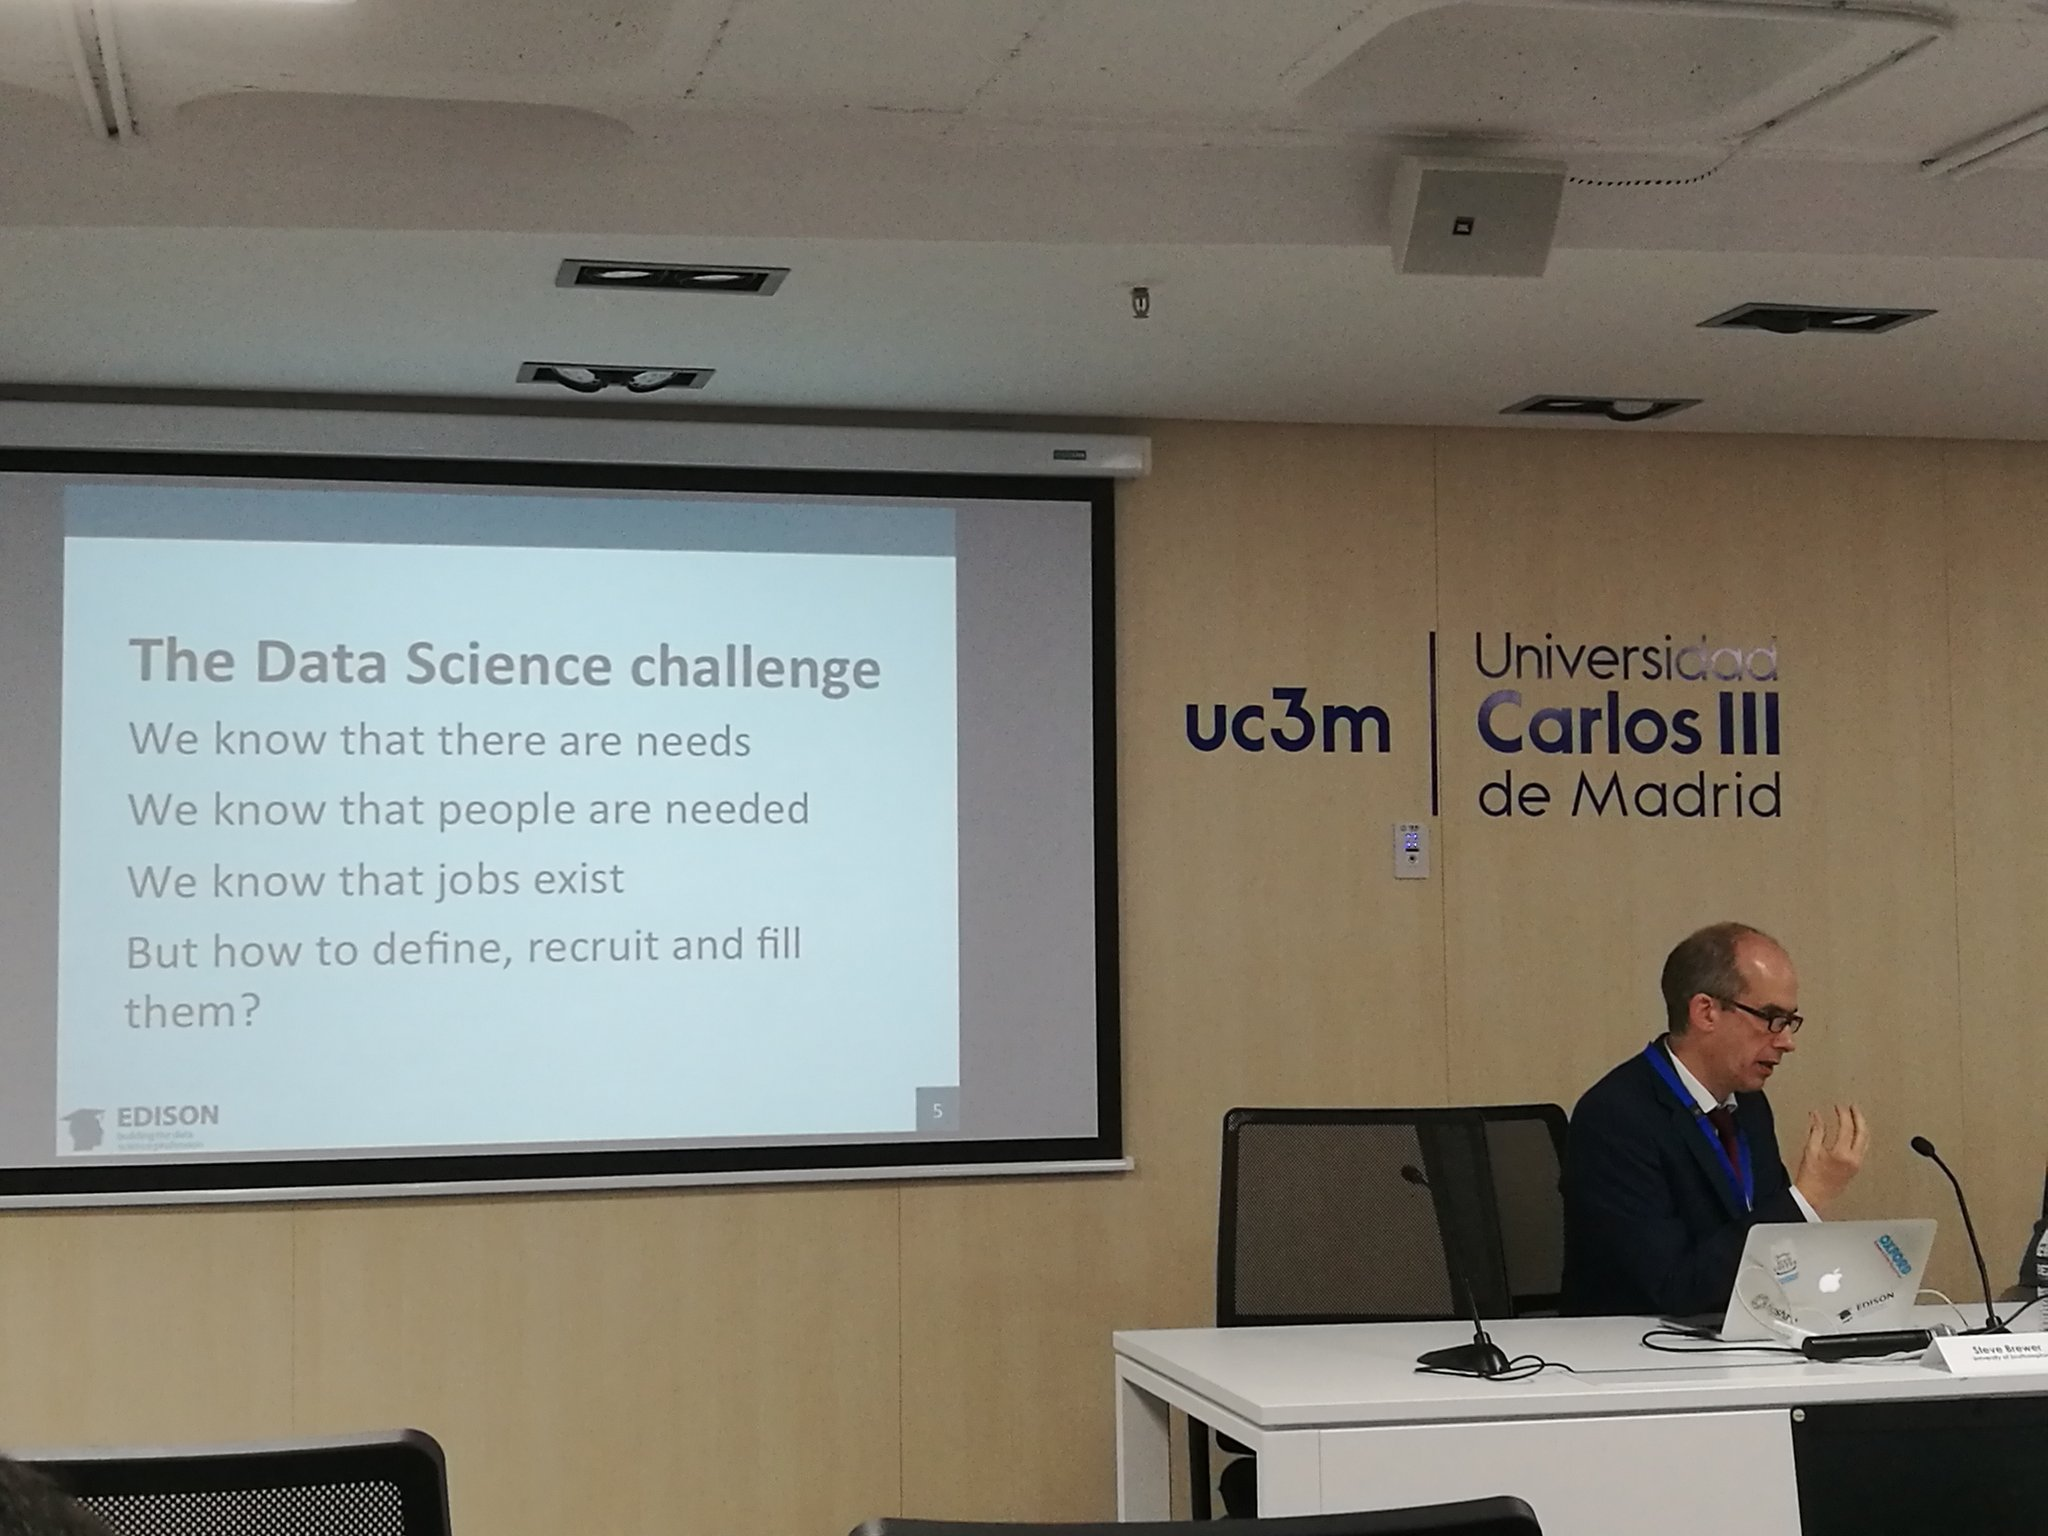 Steve Brewer @EdisonEU : We know data scientists are needed, but what is needed from them? #EDISONmadrid https://t.co/qA2ItKLnEZ